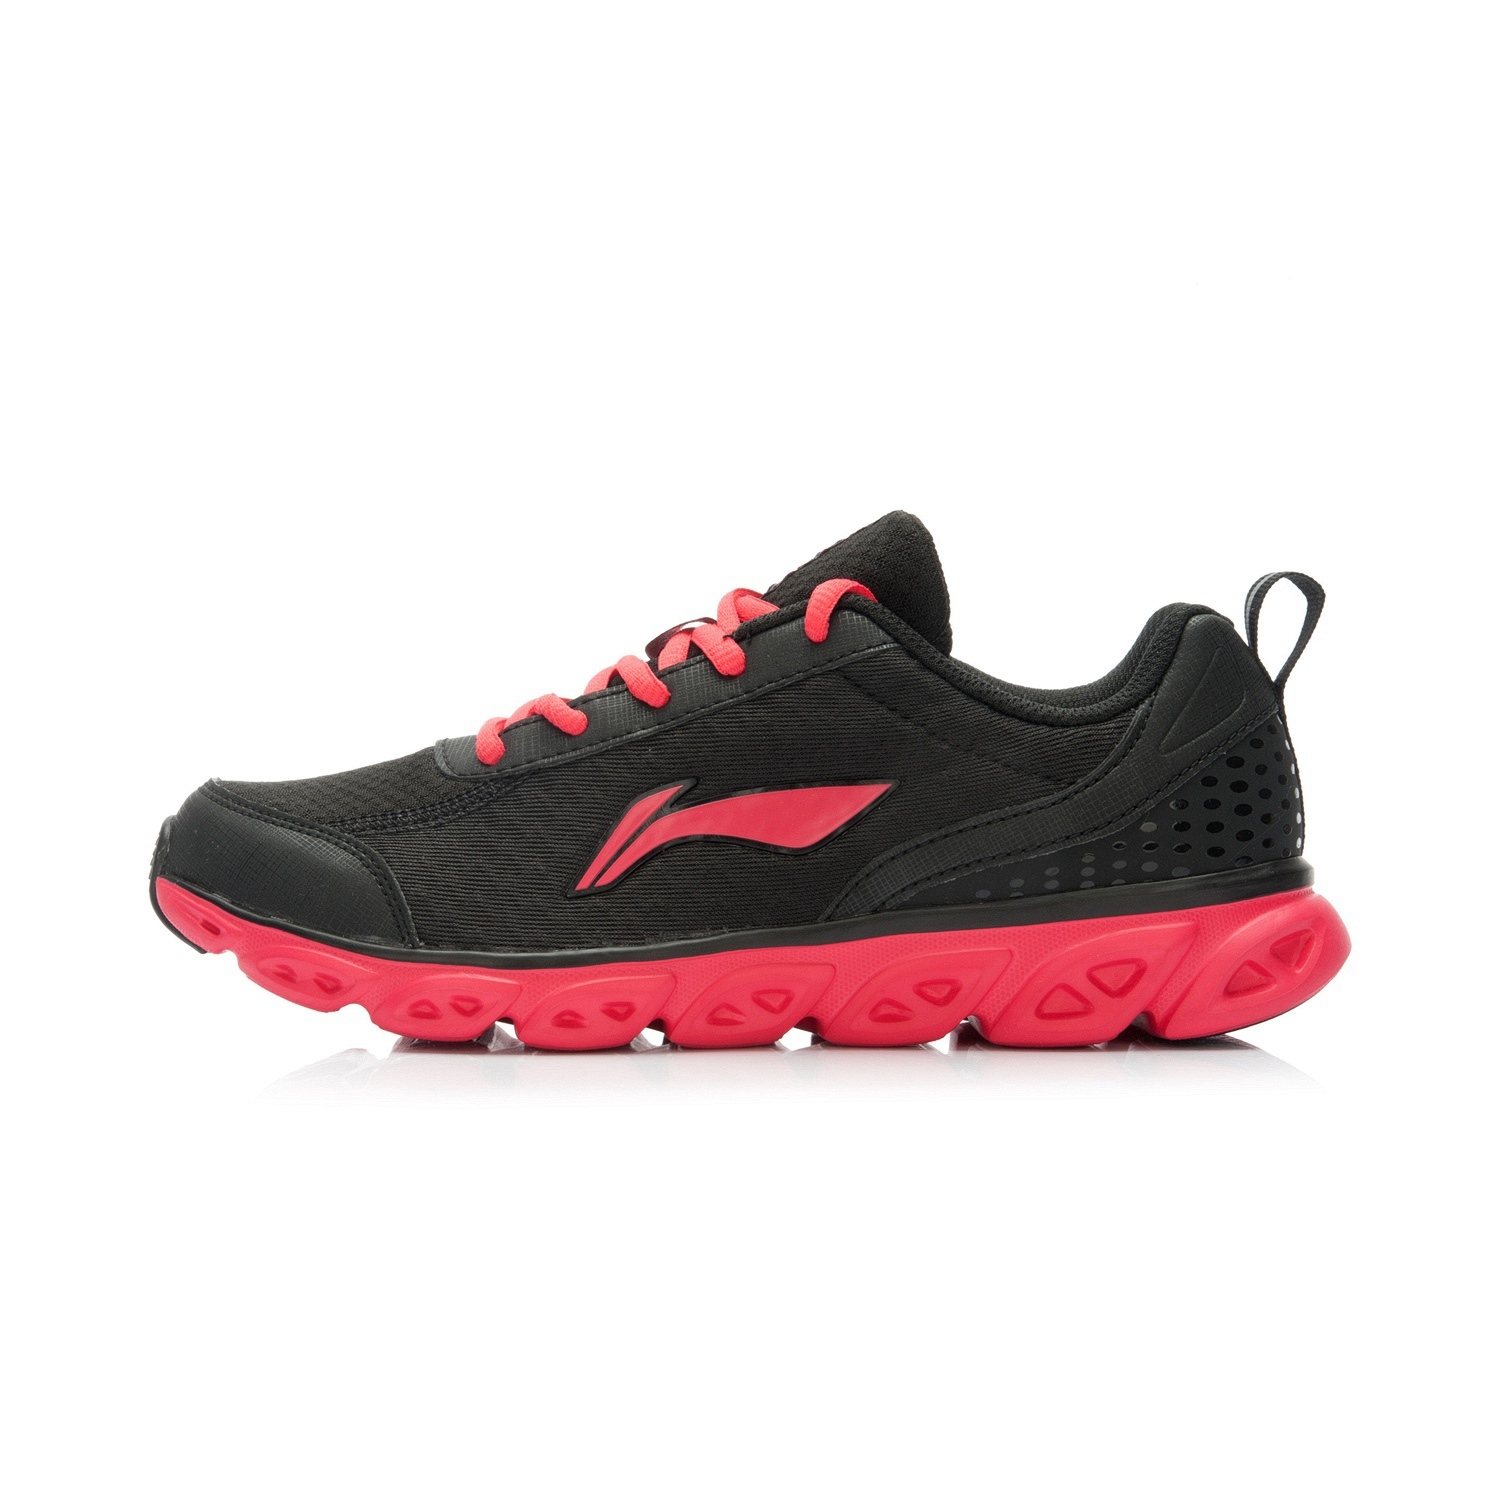 Li Ning Arhk 054 Spring Damping Wear And Breathable Running Sports Shoes